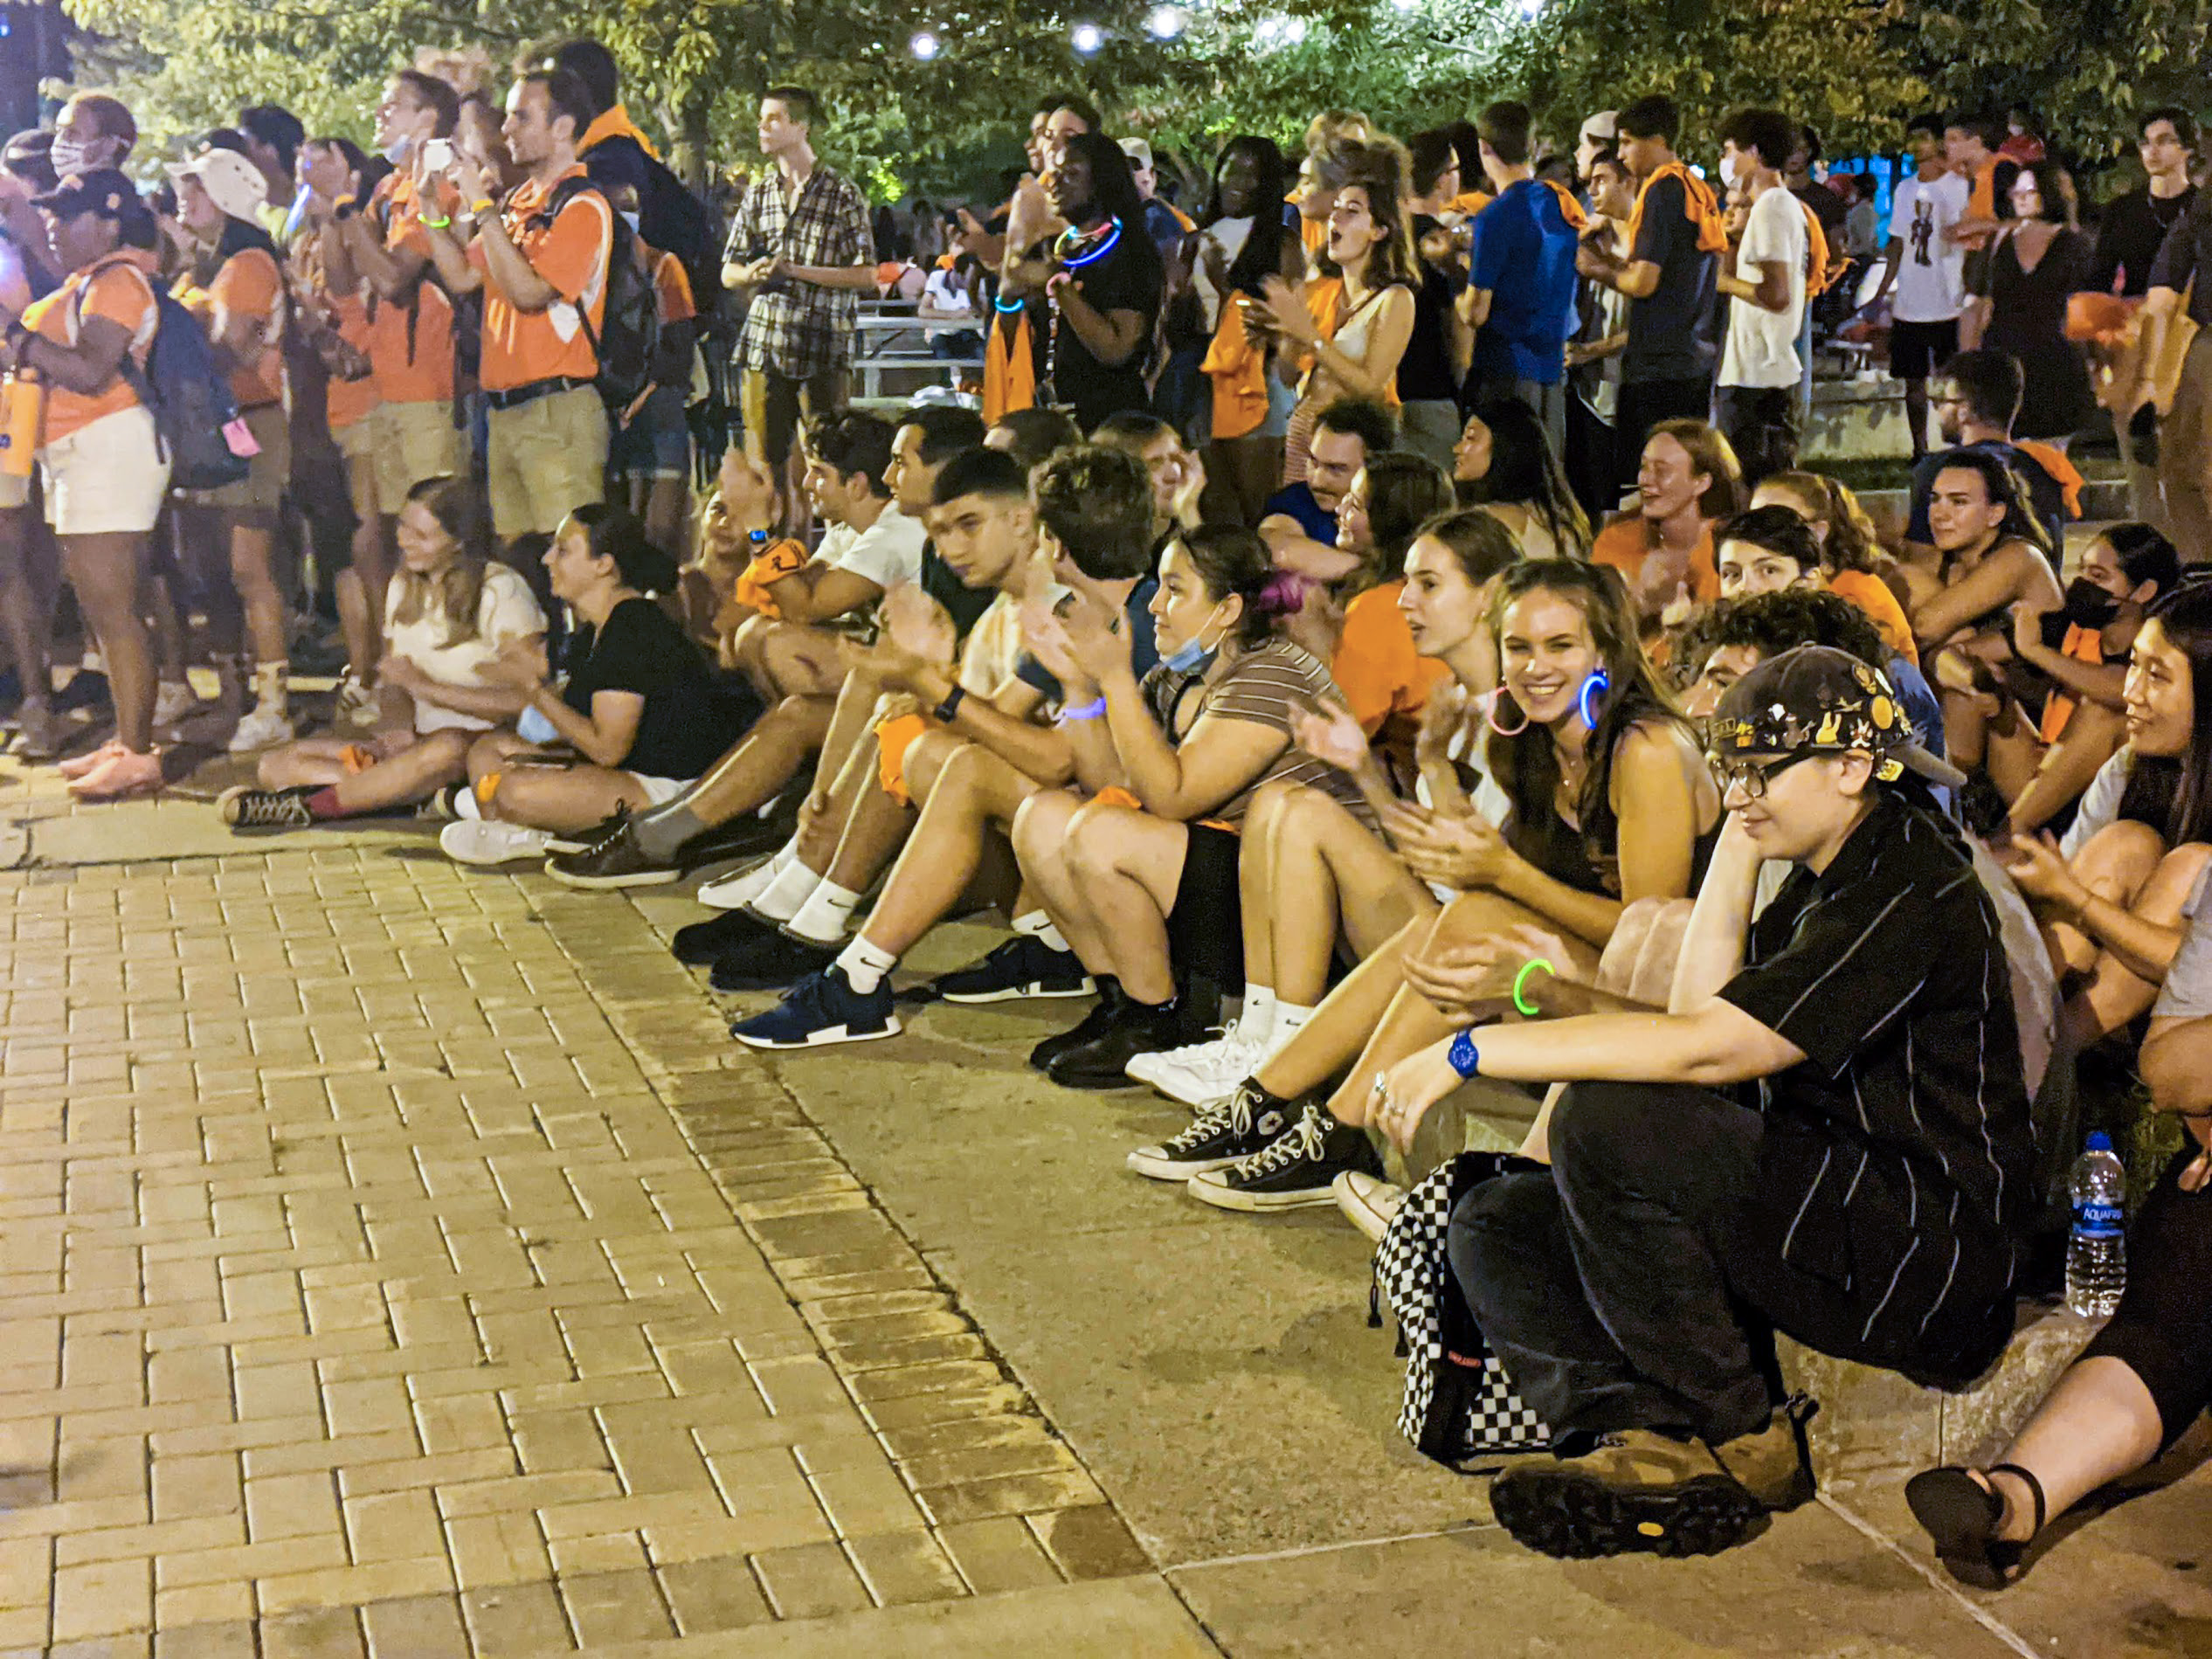 A crowd of First-year, transfer and sophomore students gathered to celebrate the new school year and being Orange